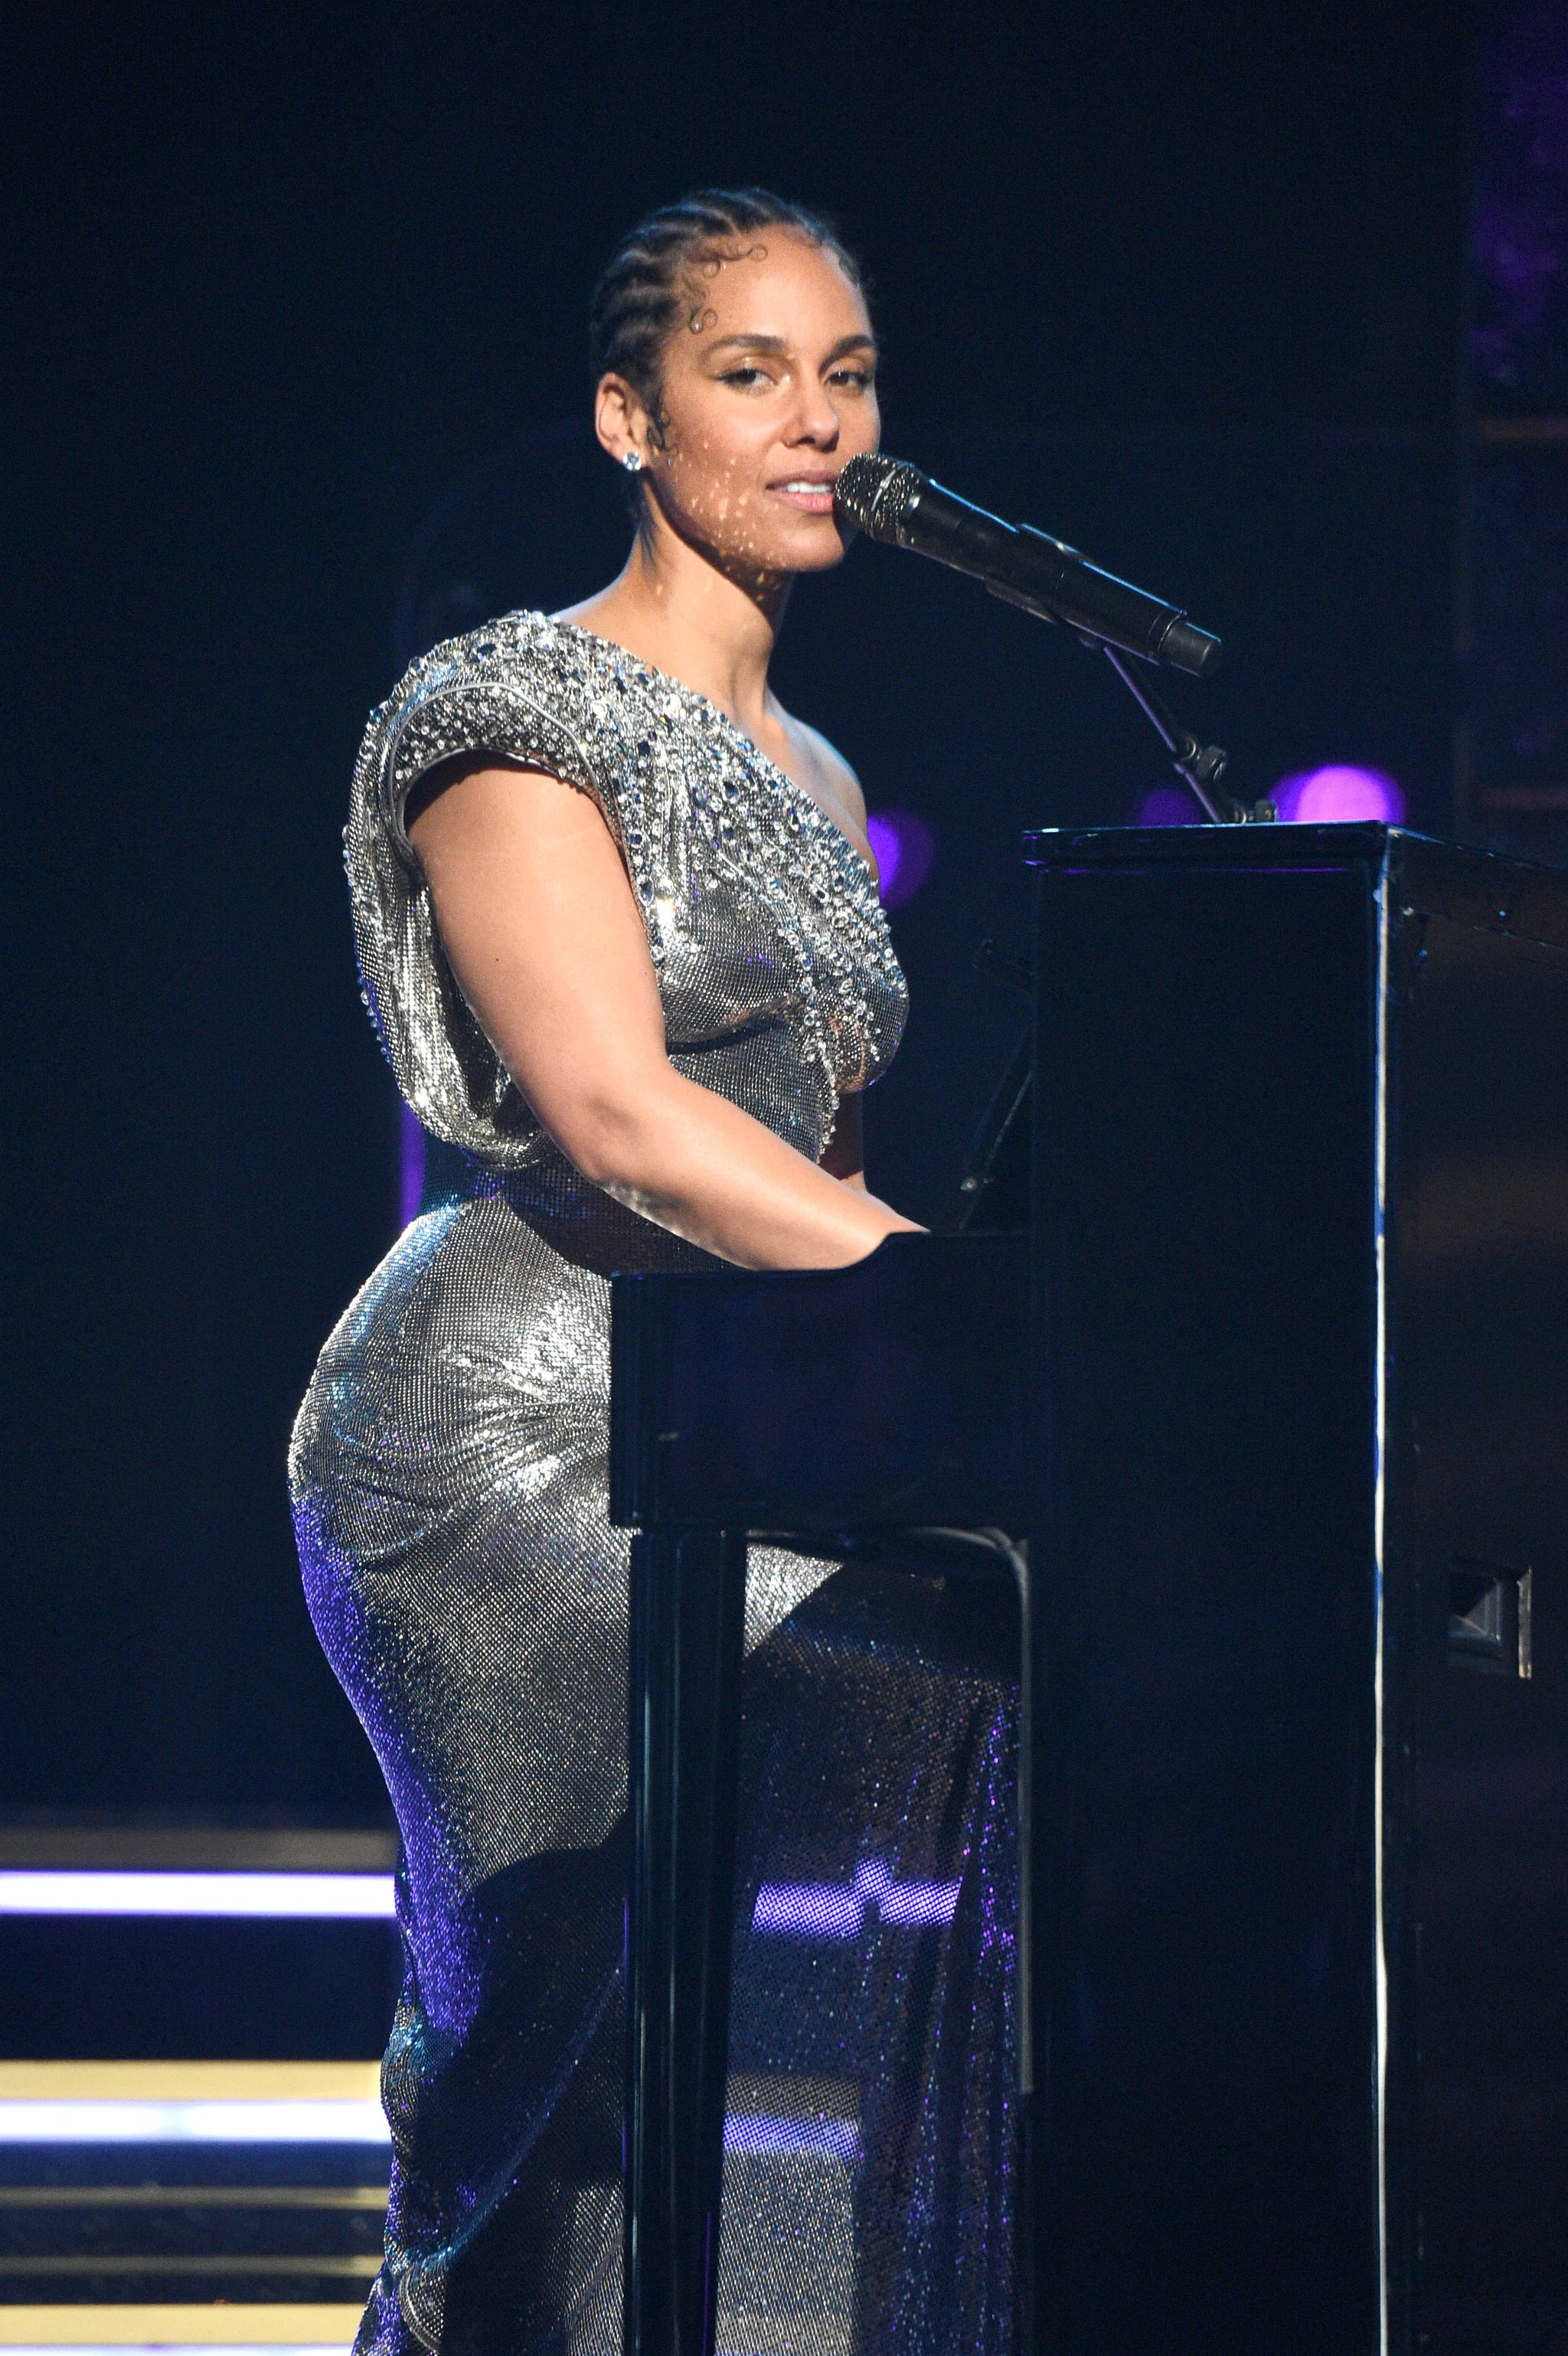 LOS ANGELES, CALIFORNIA - JANUARY 26: Alicia Keys performs onstage during the 62nd Annual GRAMMY Awards at STAPLES Centre on January 26, 2020 in Los Angeles, California. (Photo by Kevin Mazur/Getty Images for The Recording Academy)